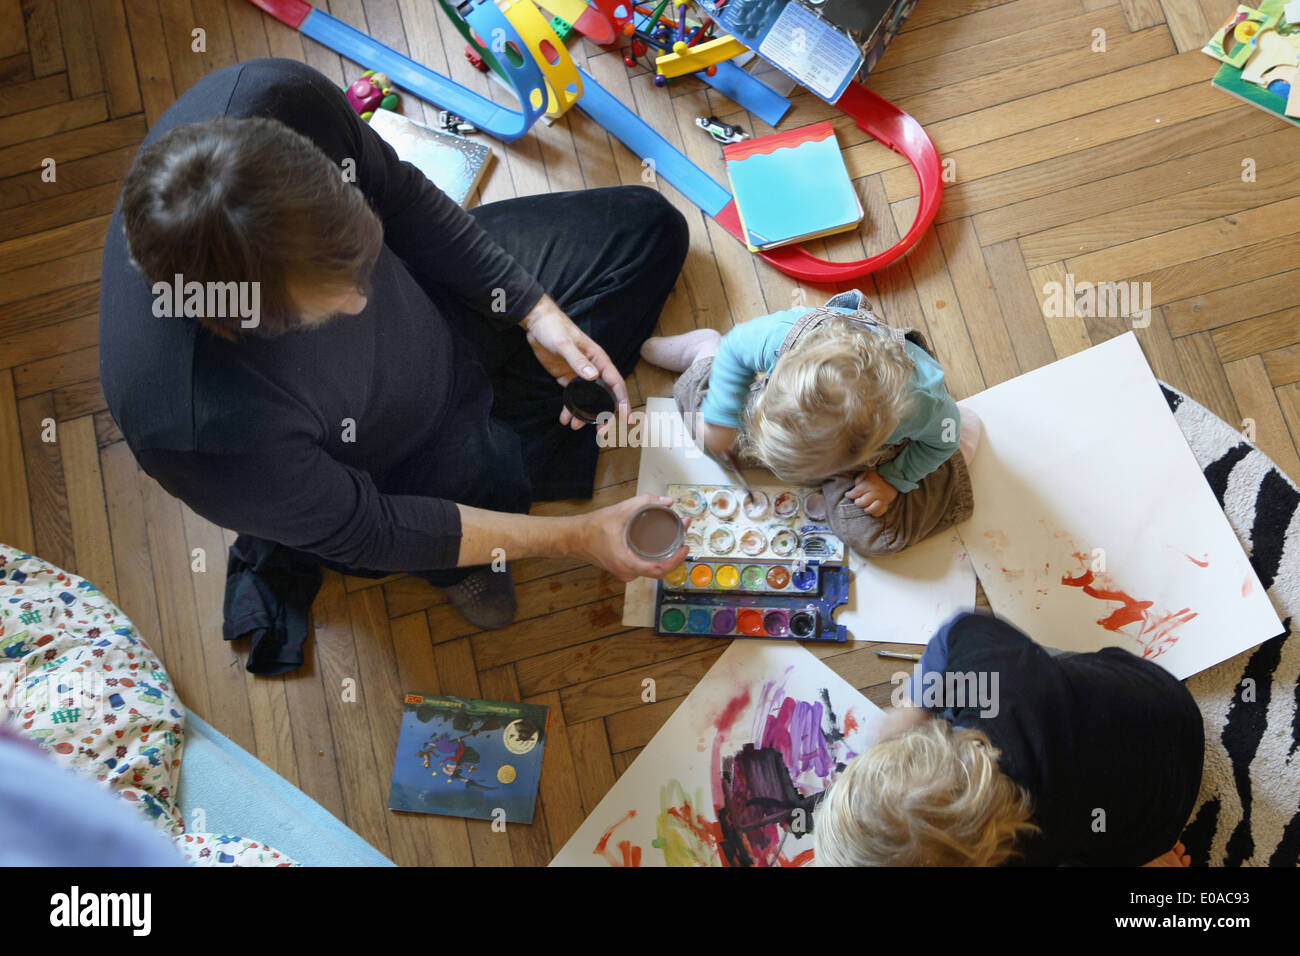 Father and sons painting on floor - Stock Image